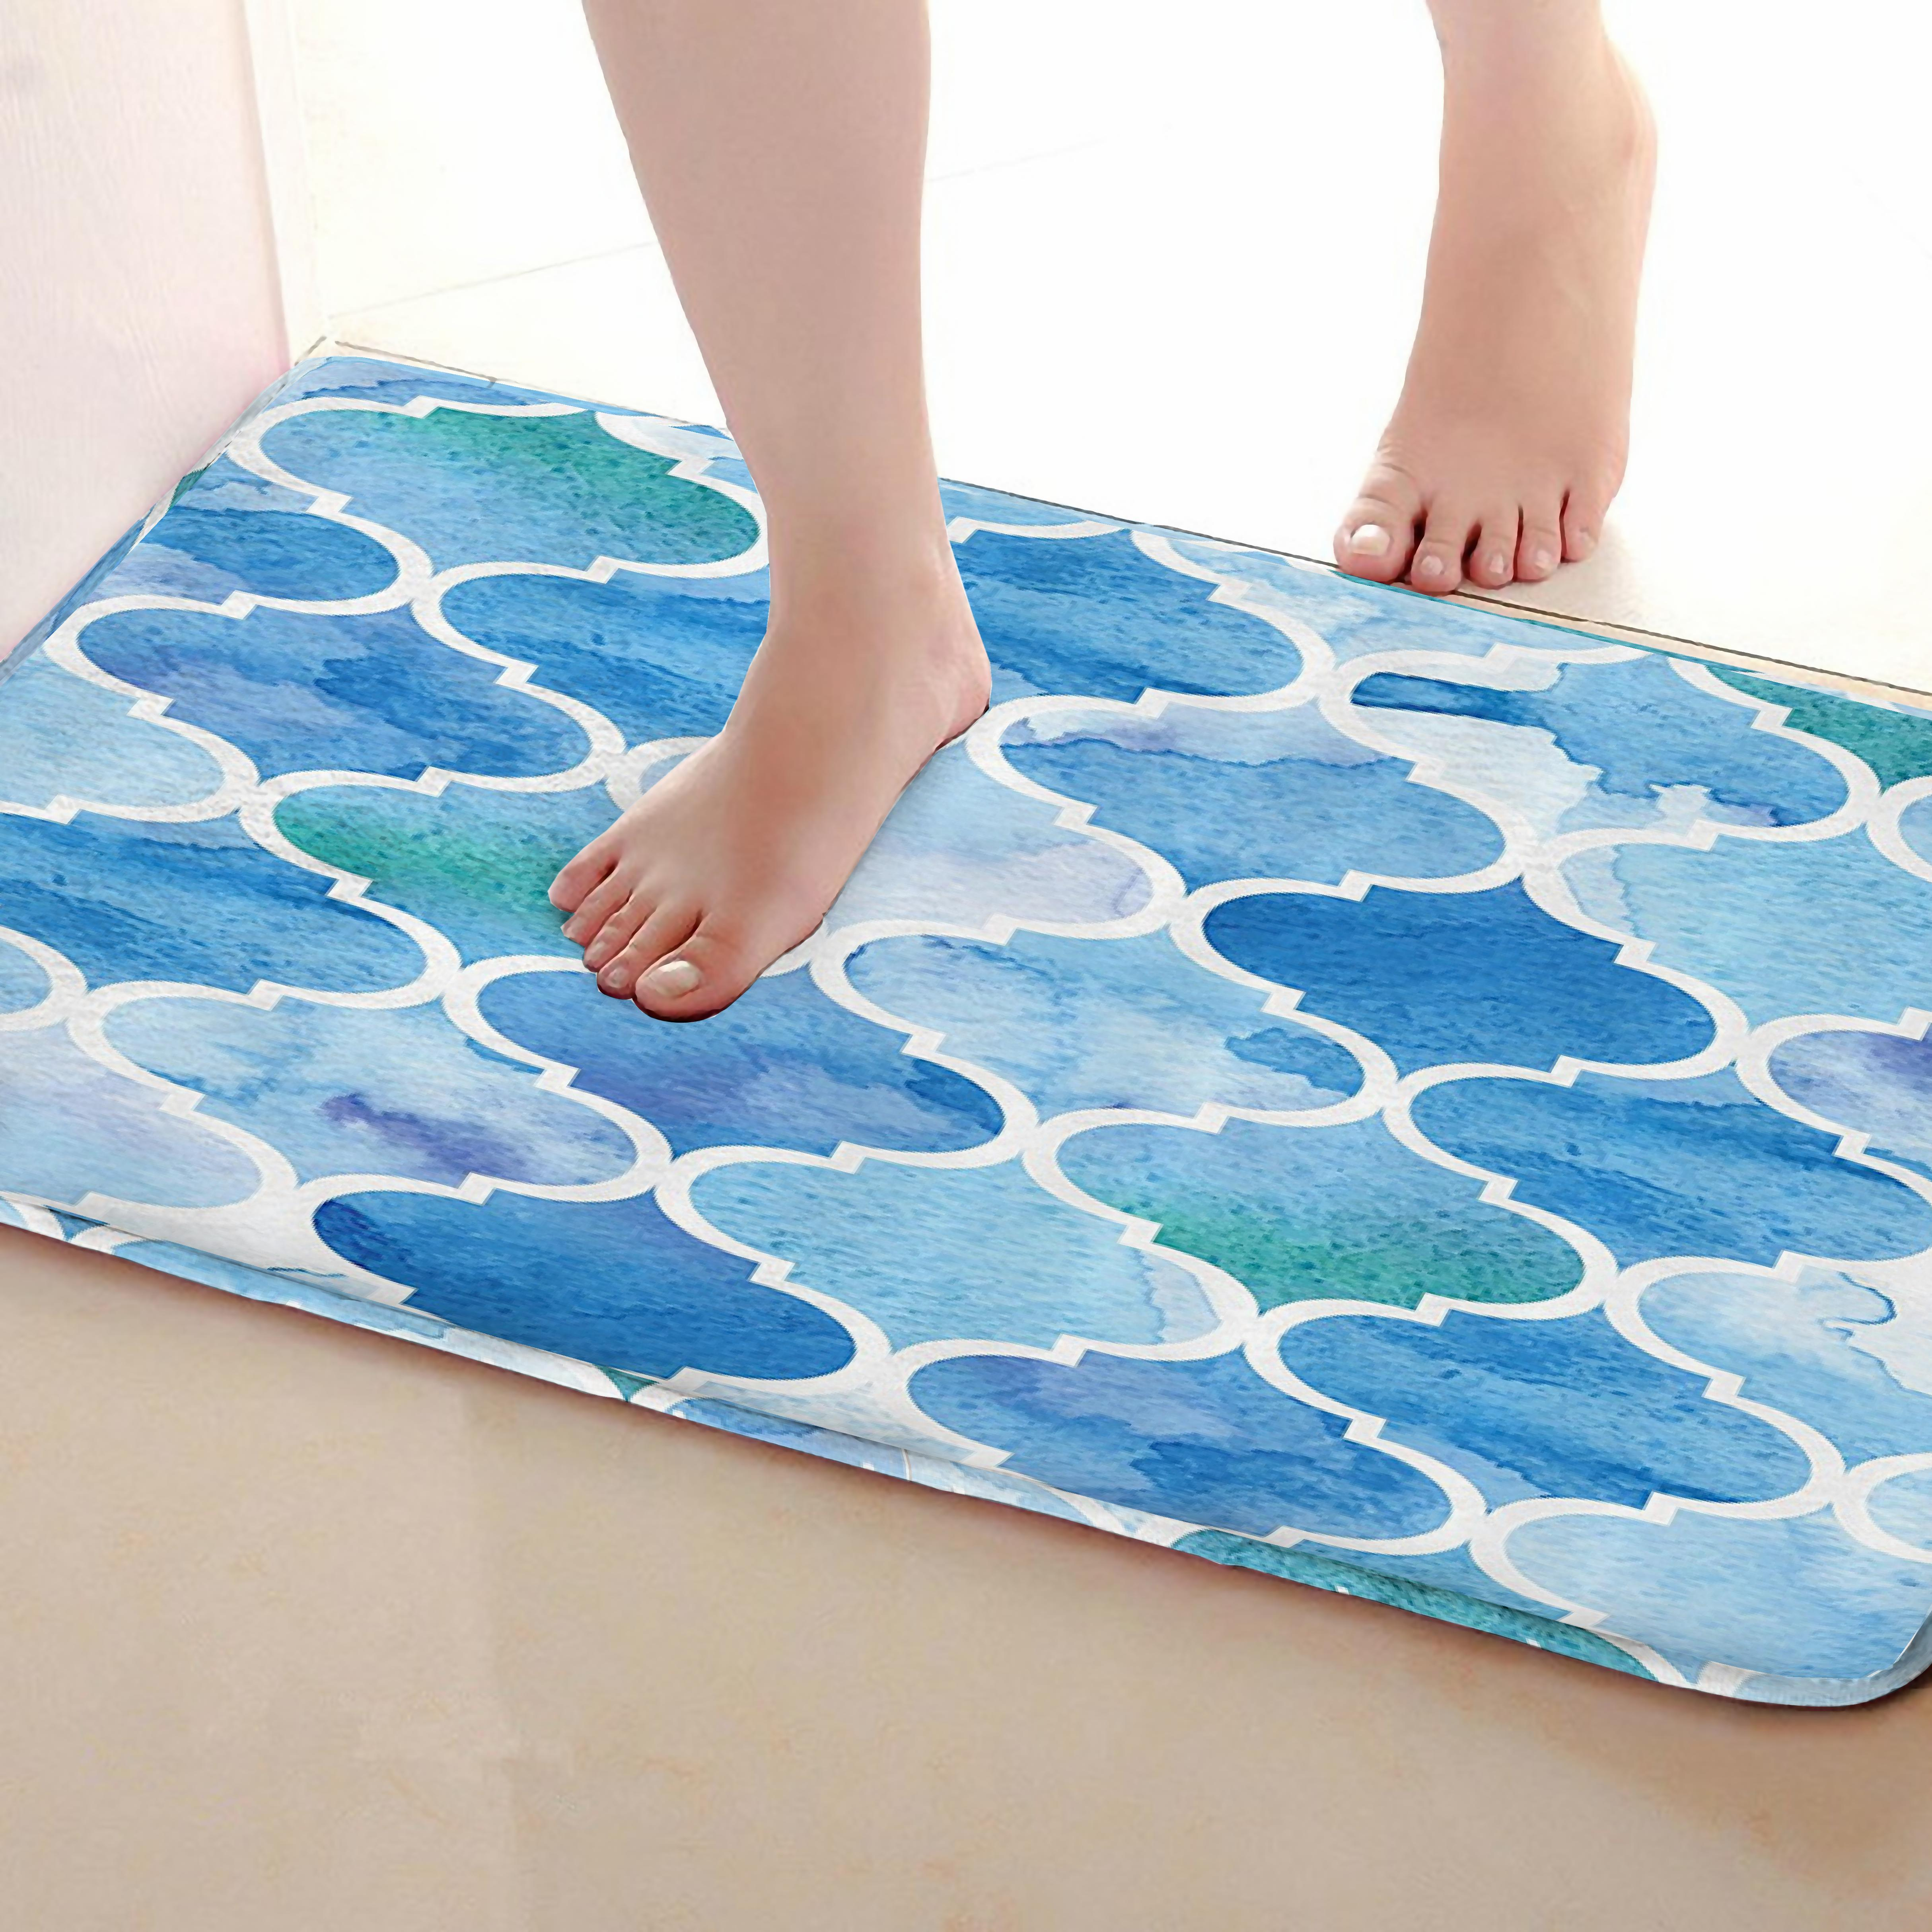 Lantern shape Style Bathroom Mat,Funny Anti skid Bath Mat,Shower Curtains Accessories,Matching Your Shower Curtain